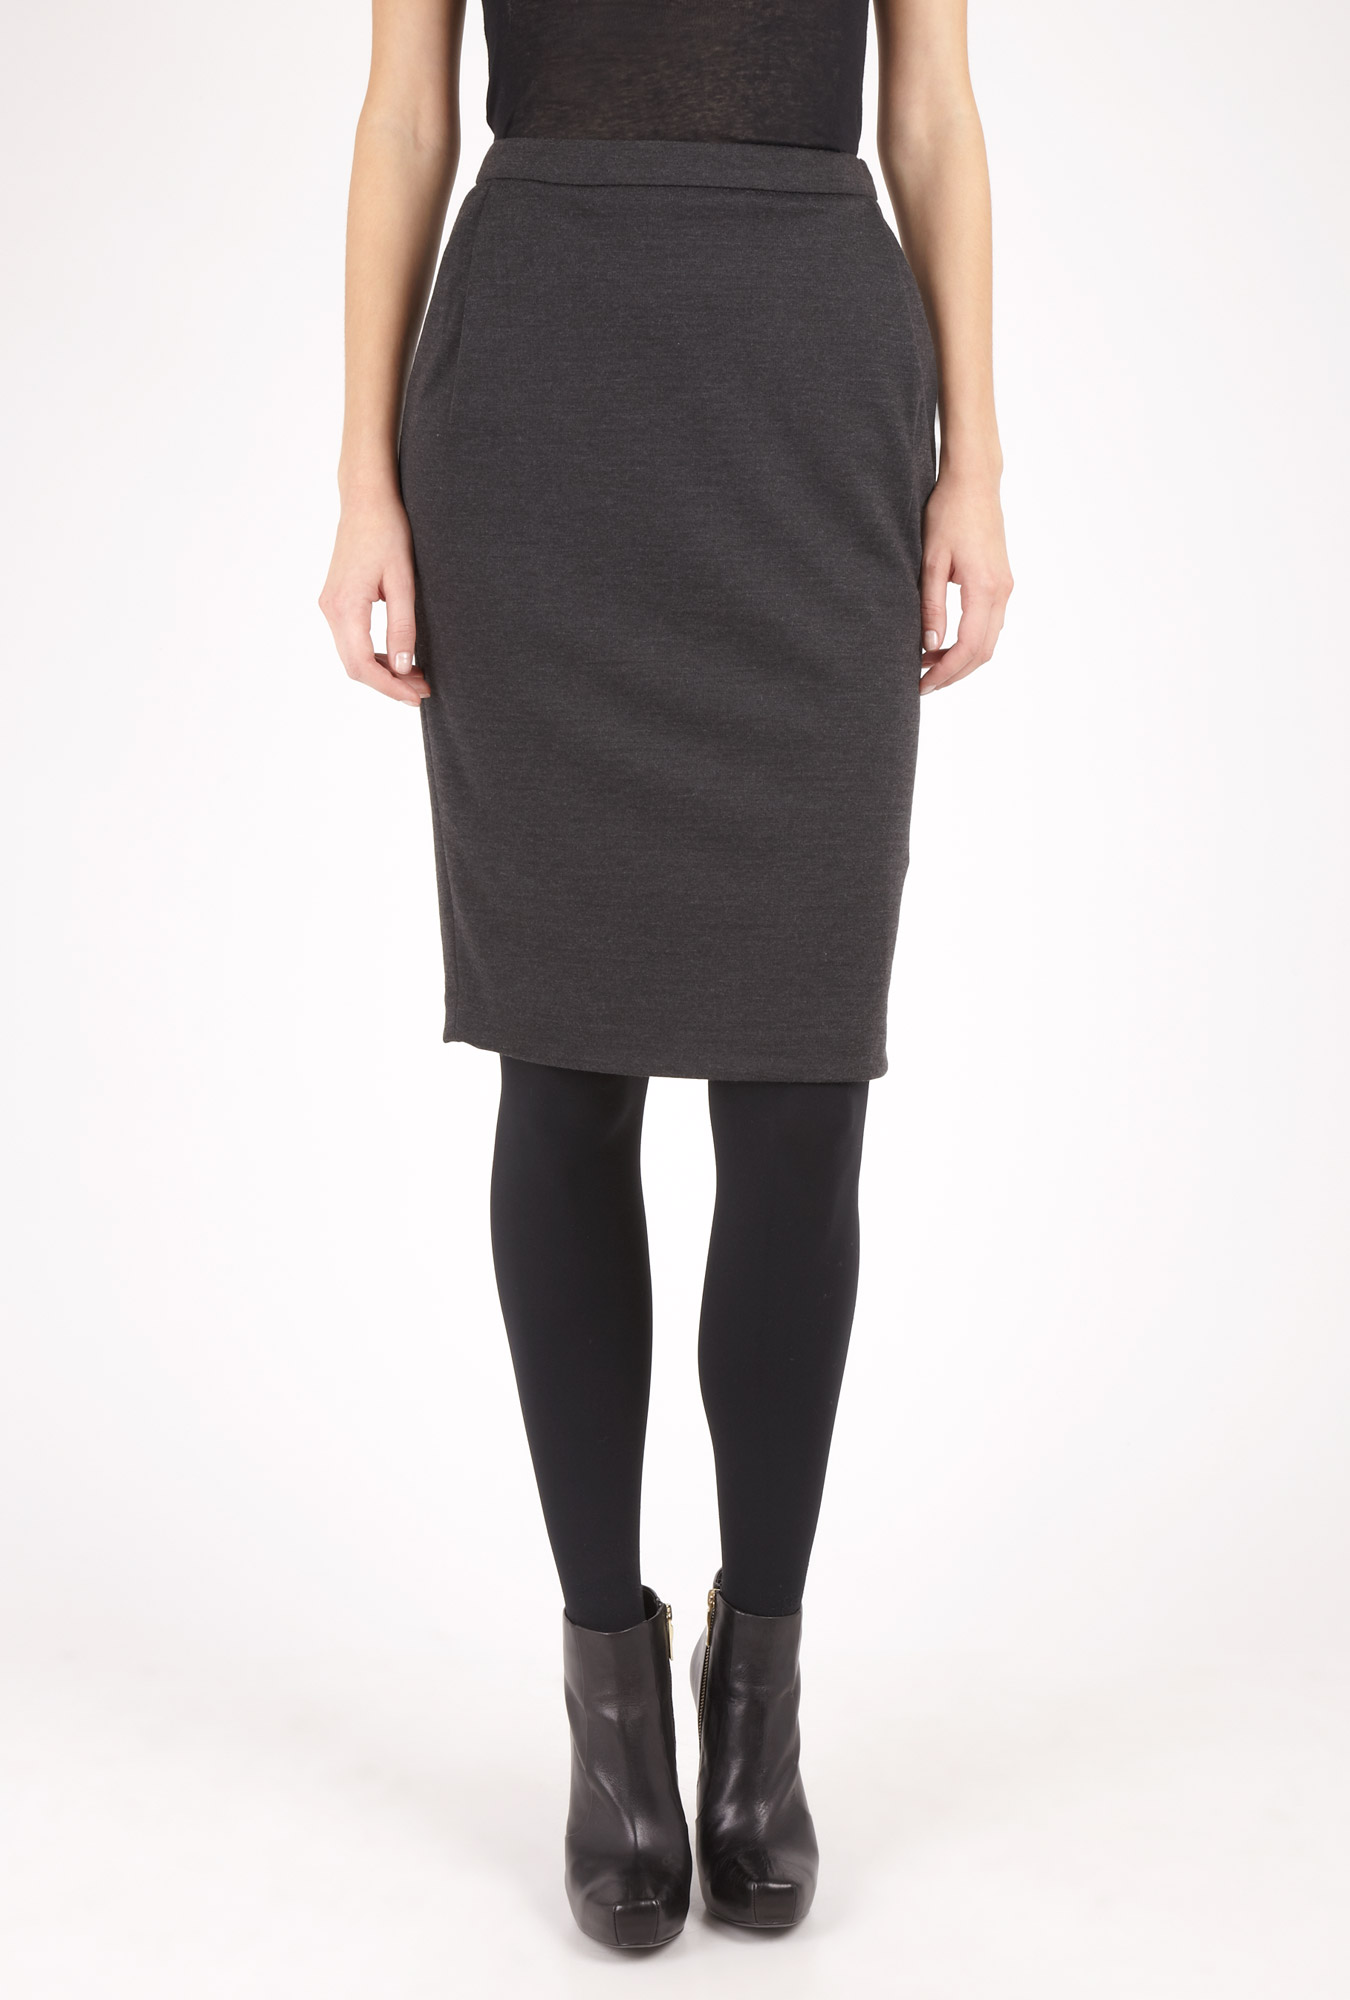 Exclusive Pencil Skirts for Women